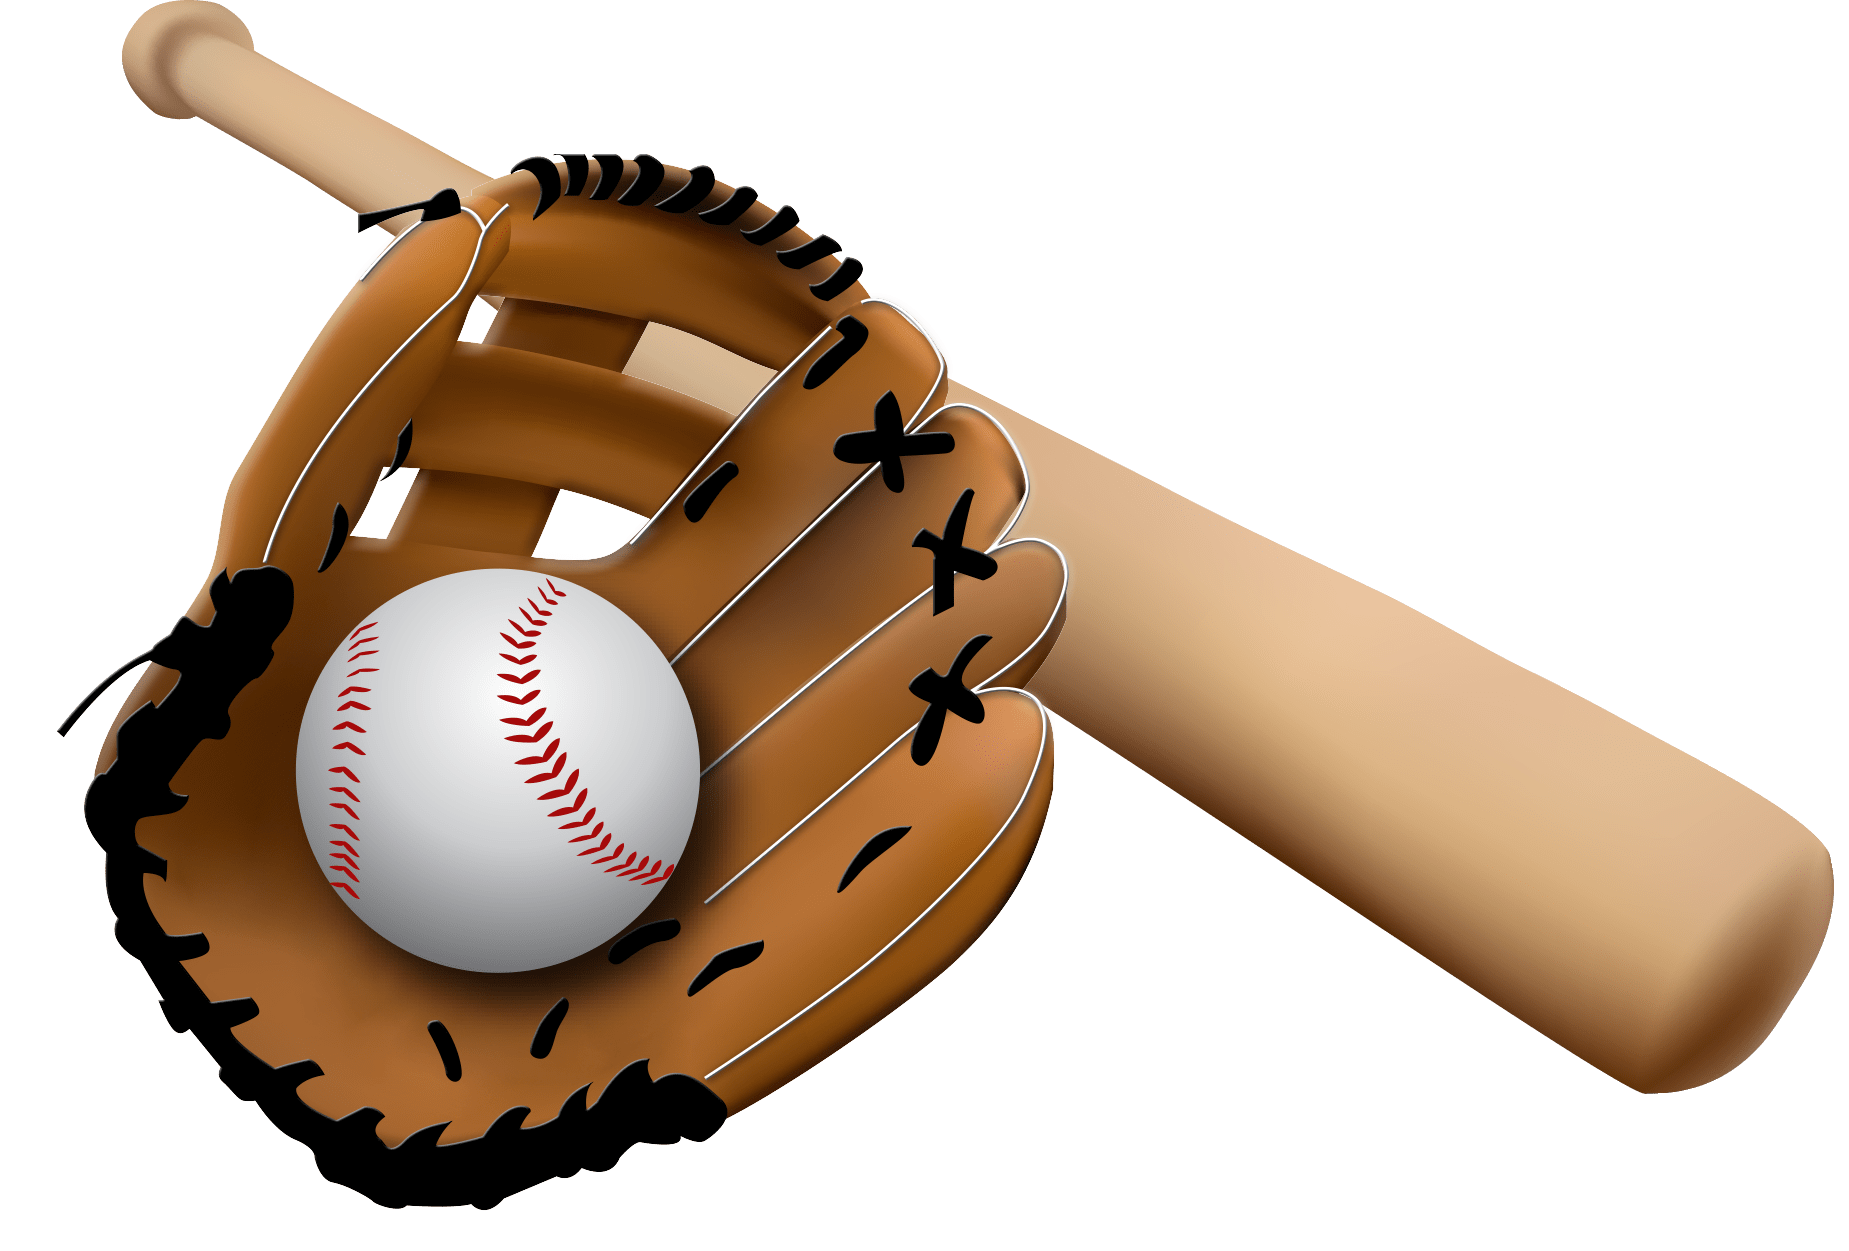 1849x1251 Baseball Bat Clipart Vintage Baseball